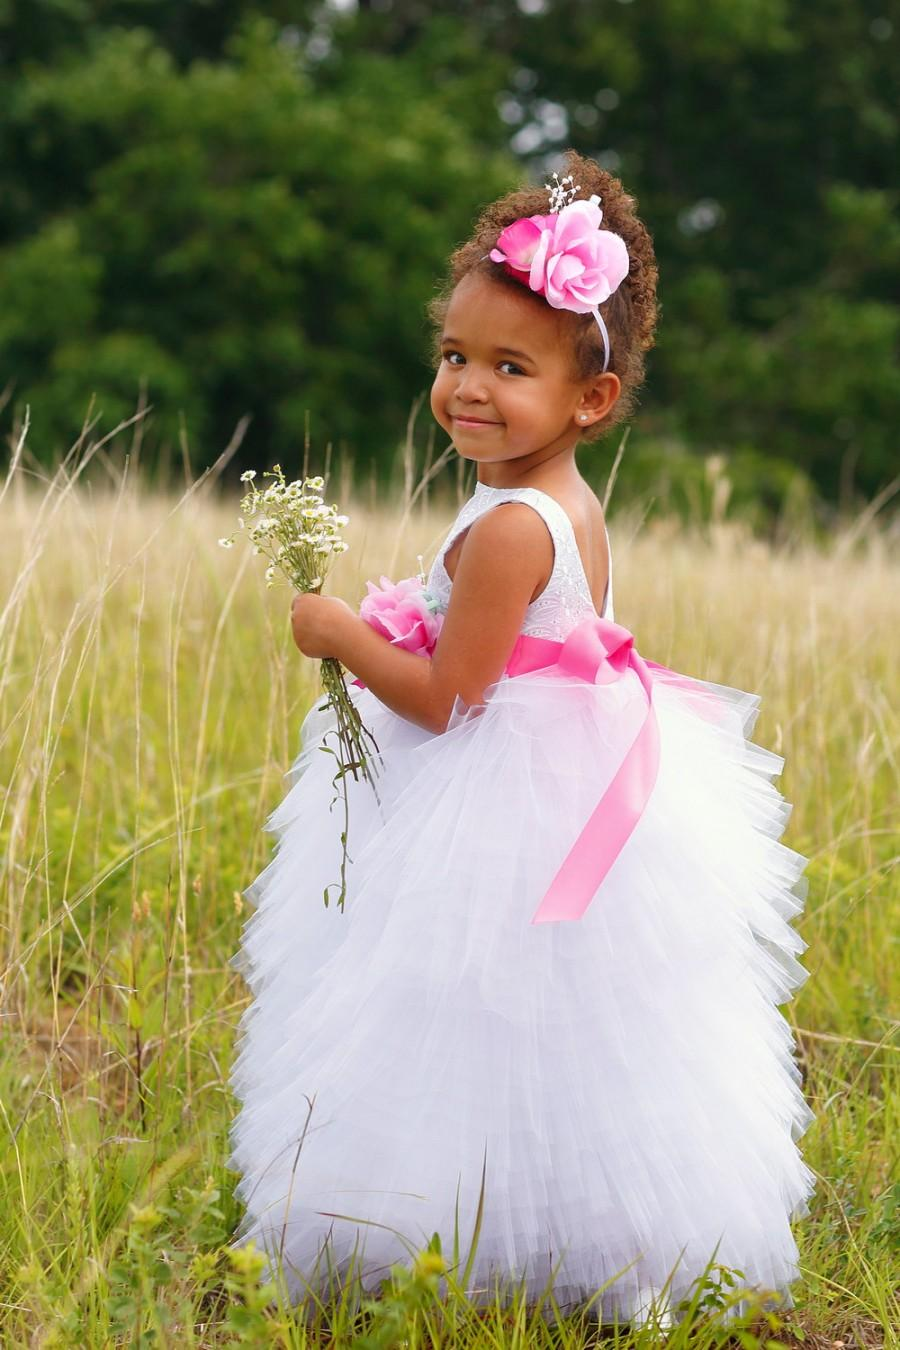 Wedding - Toddler Flower Girl Dress - Full Length Dresses - Pageant  - White Wedding - Boutique Dress -  Custom Colors Available - 2T to 8 Years